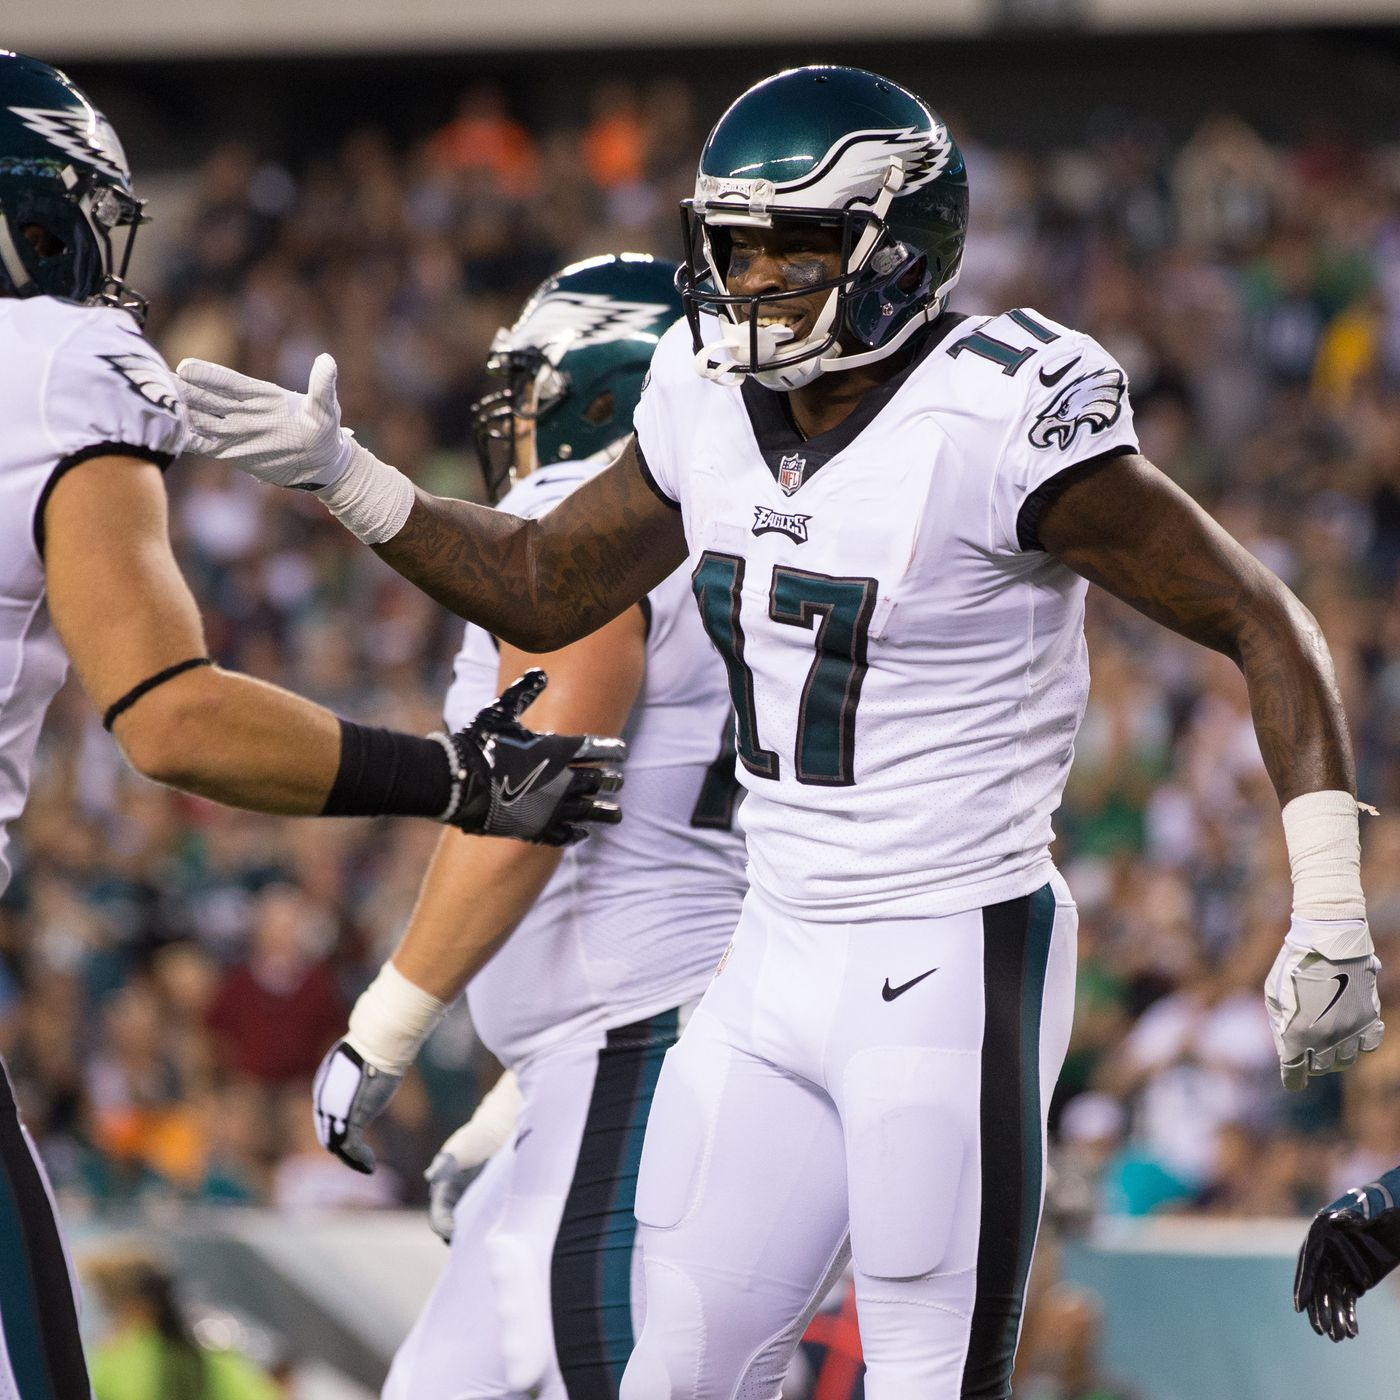 d05c13f14d1 Alshon Jeffery scored his first of many Eagles touchdowns from Carson Wentz  (WATCH)